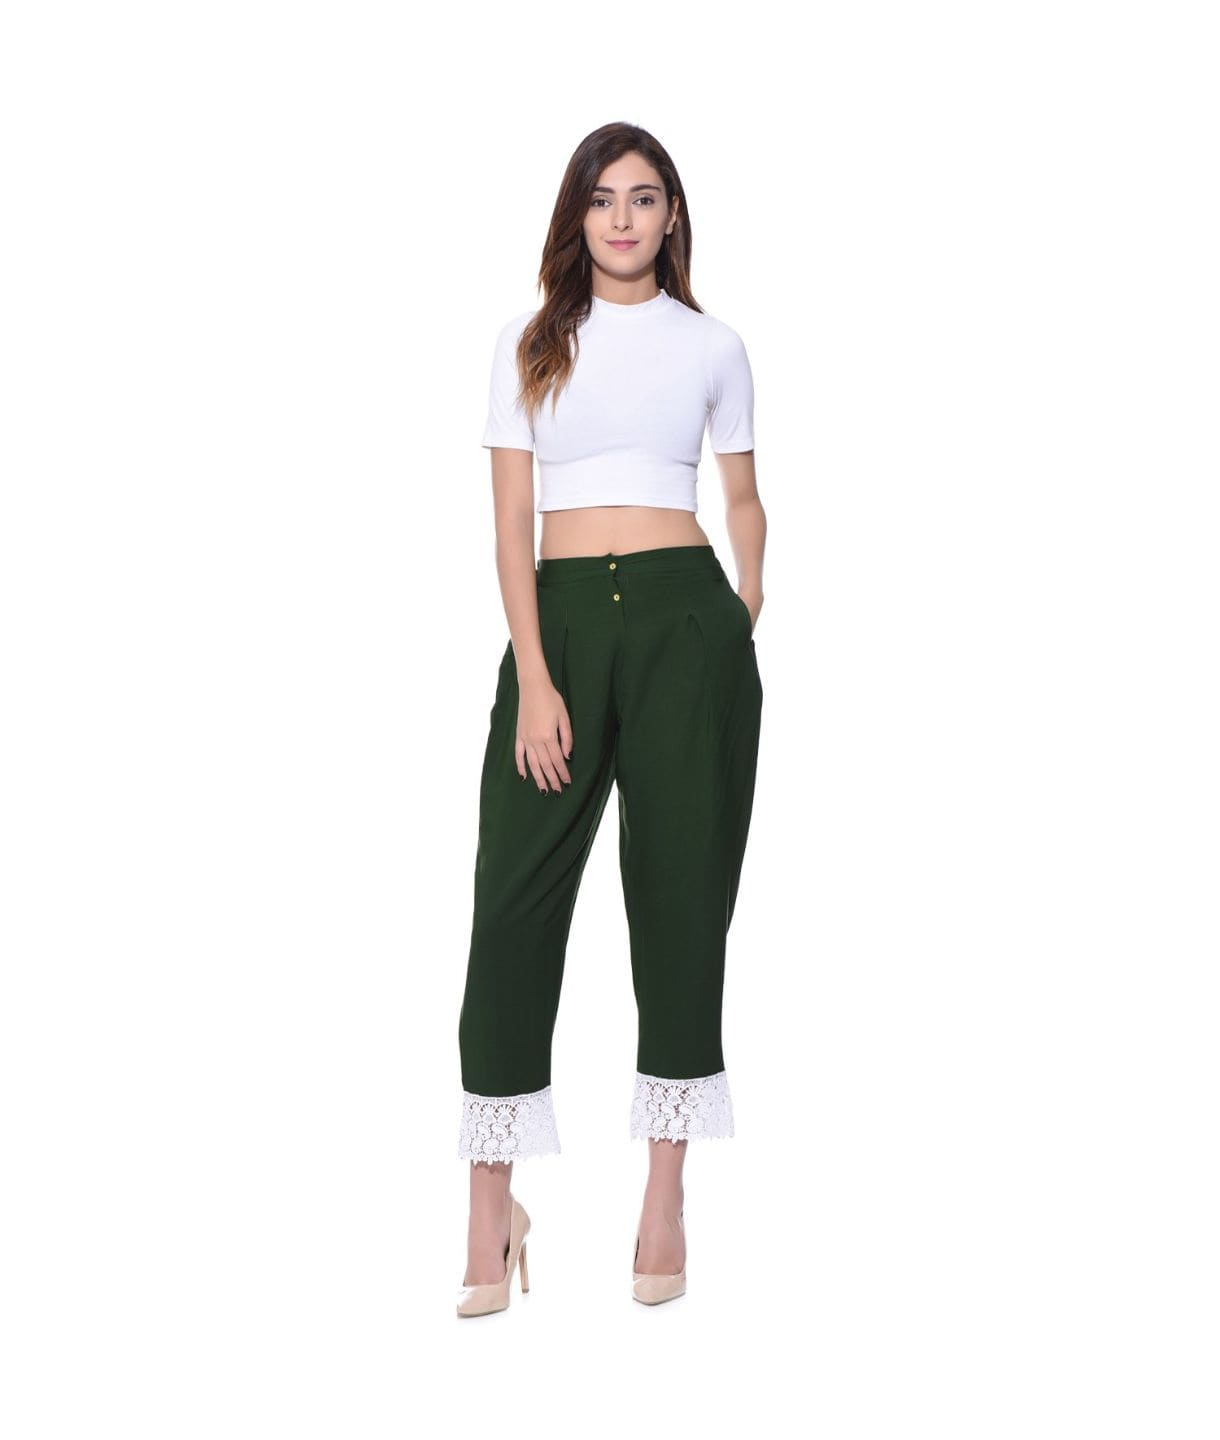 Uptownie Lace Border Green Crepe Pants 1 clearance sale